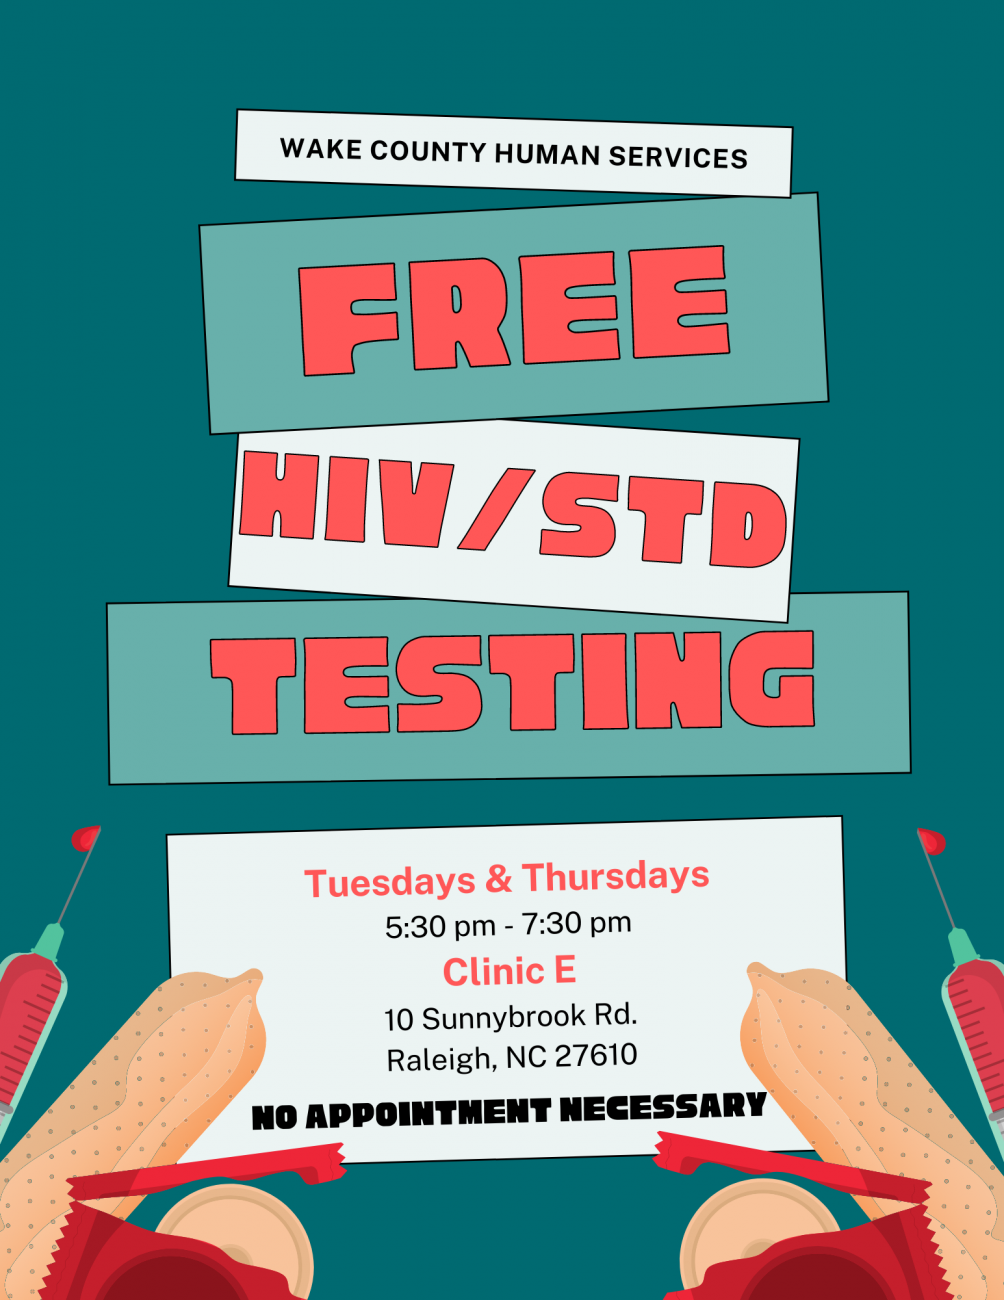 Free HIV/STD testing on Tuesday and Thursday in Wake County Public Health Building, Clinic E (5:30pm-7:30pm)